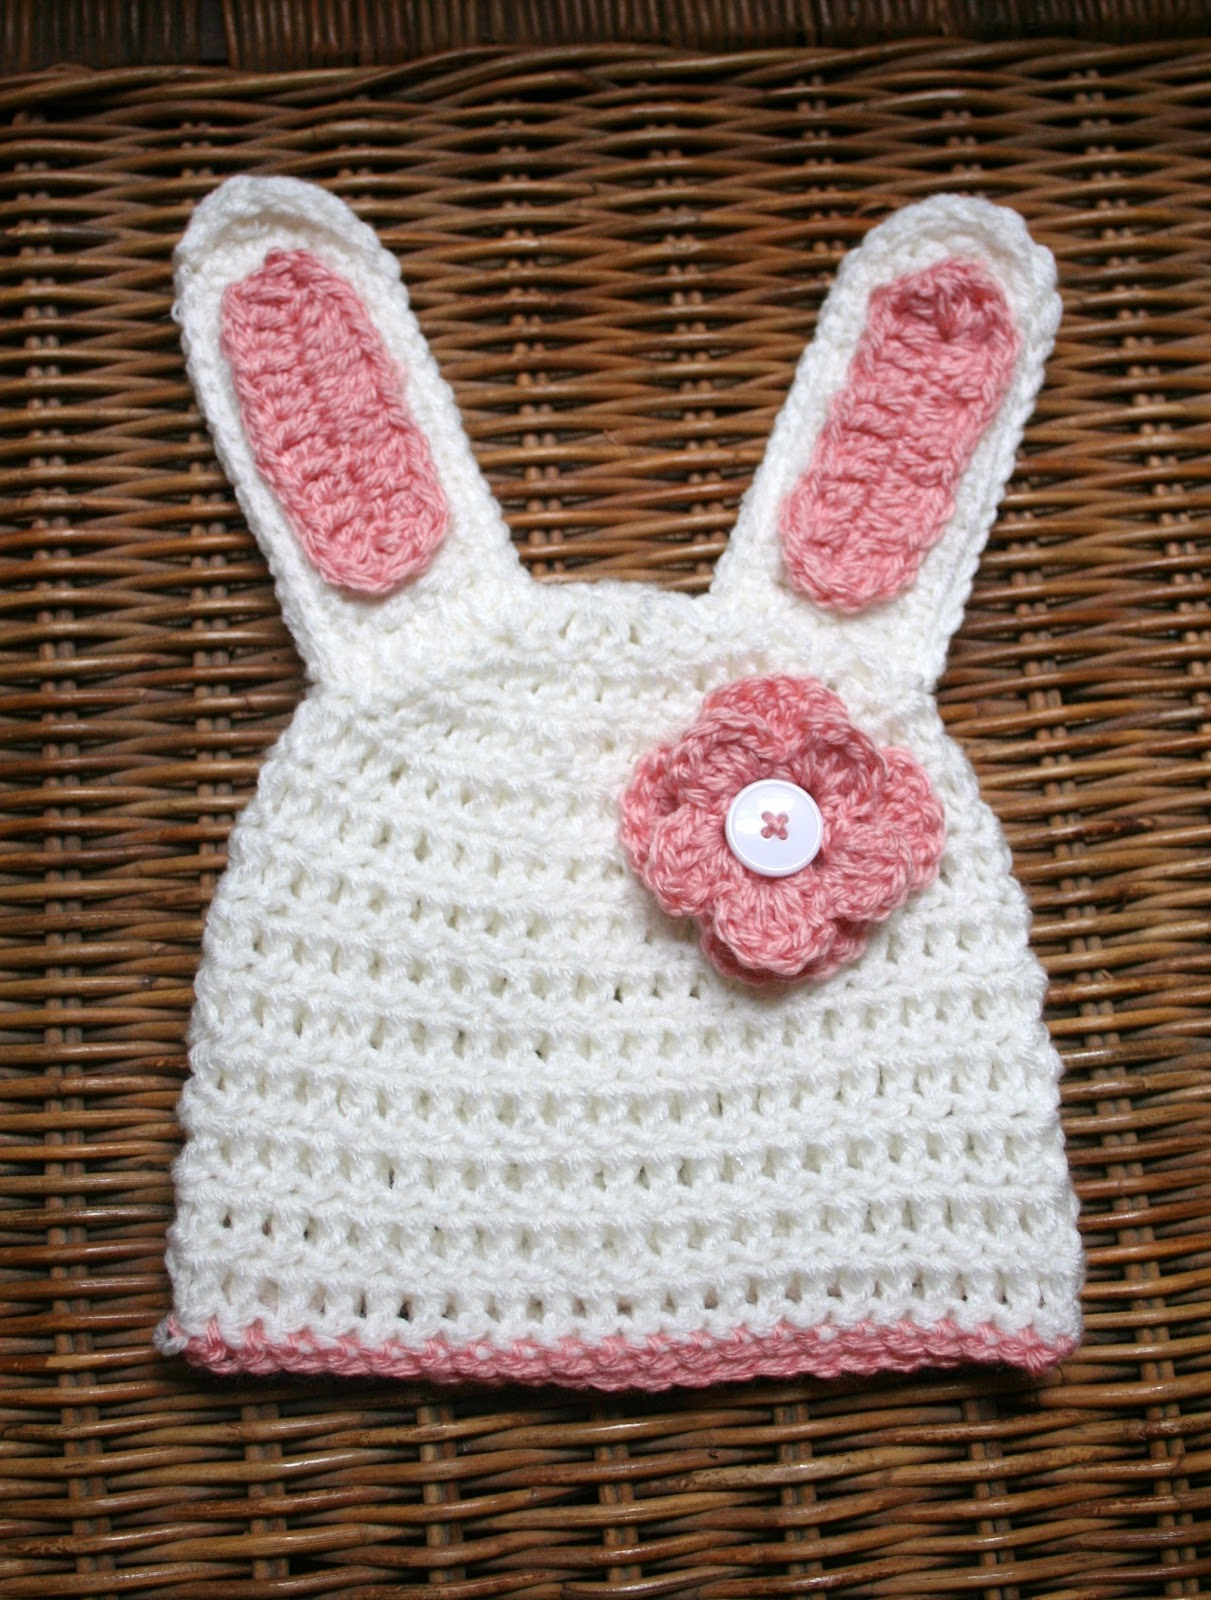 Free Crochet Pattern Easter Bunny Hat : Tampa Bay Crochet: Easter Bunny Hat with Flower - Free Pattern